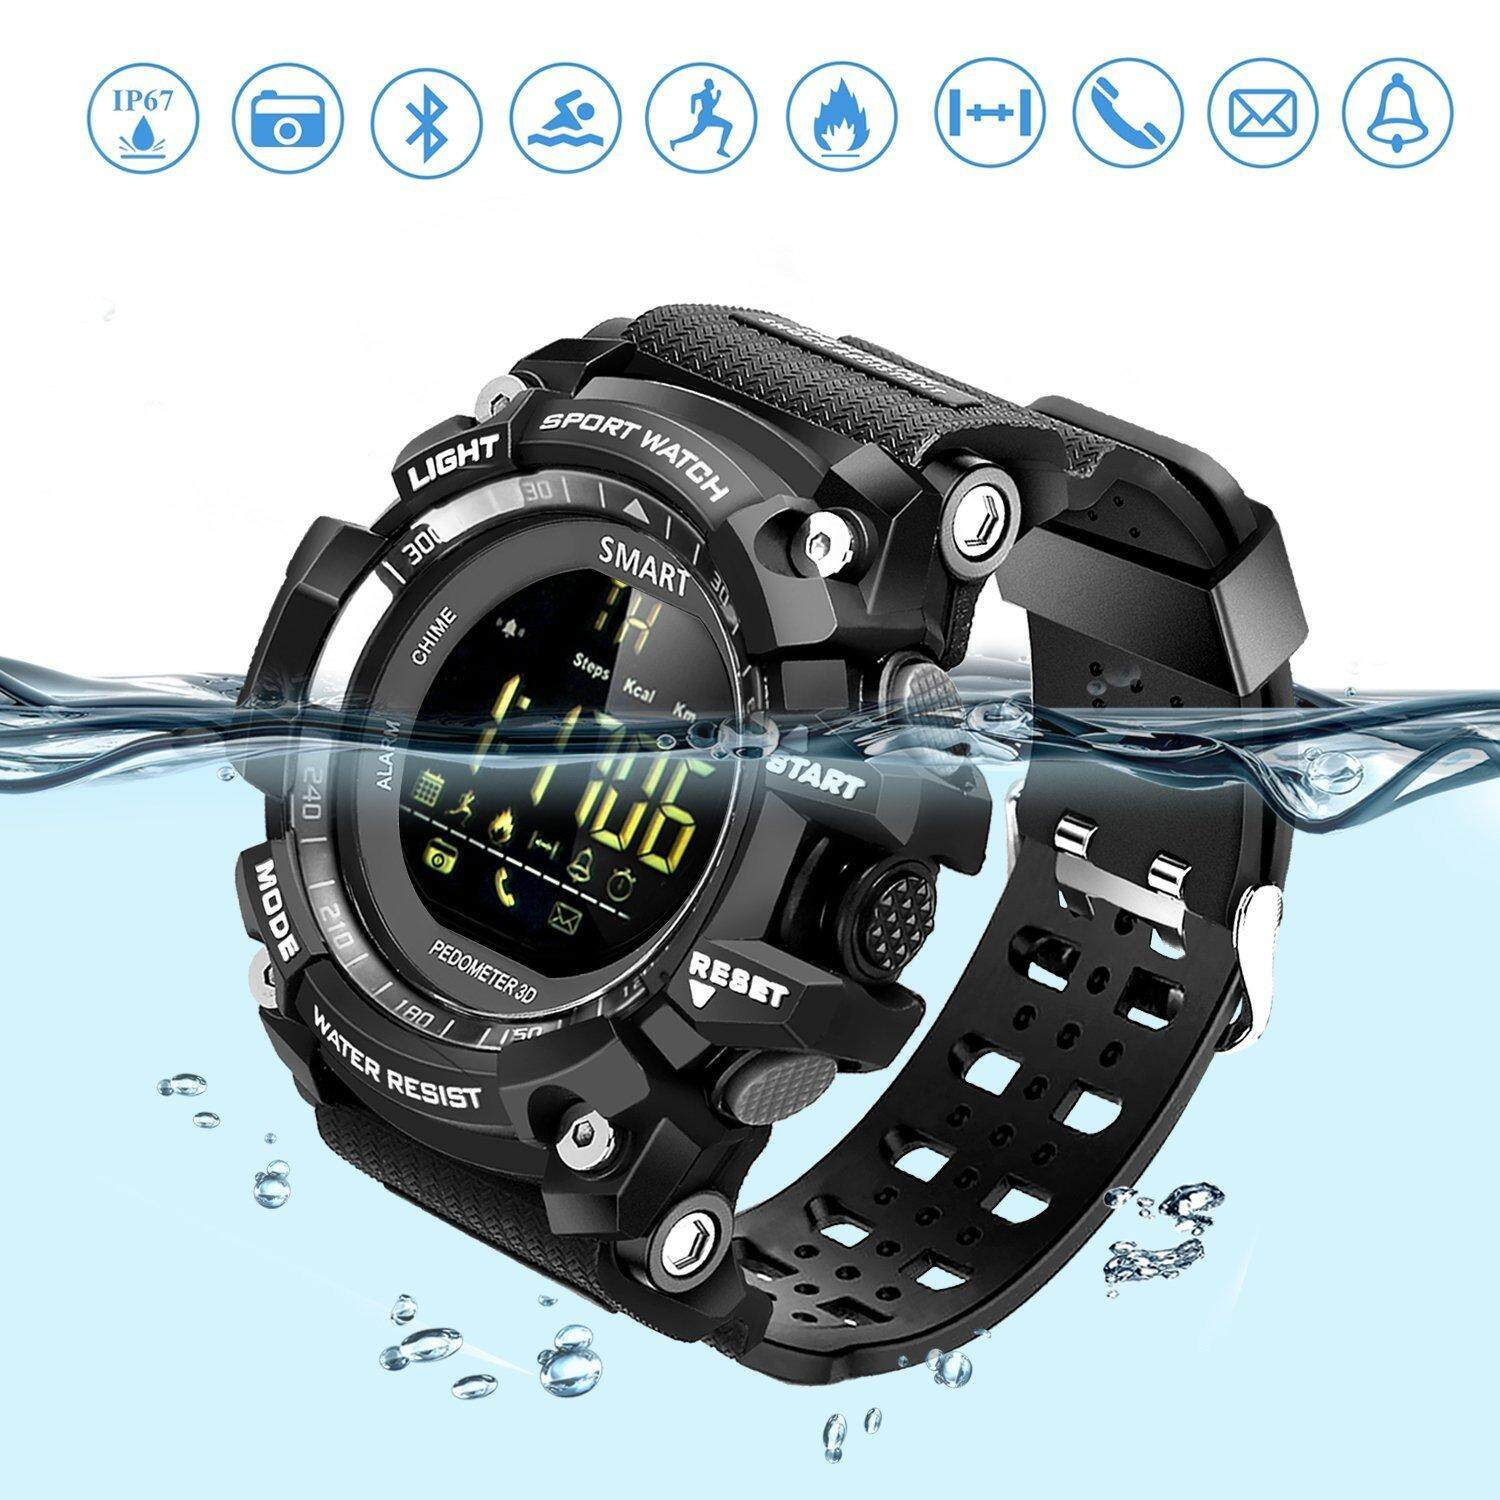 ส่วนลด Jvgood Sports Smart Watch Bluetooth Watch Pedometer Fitness Tracker Wearable Technology Ip67 Waterproof Remote Camera Running Equipment Android And Smartphones Best Choice Men And Boys Black จีน